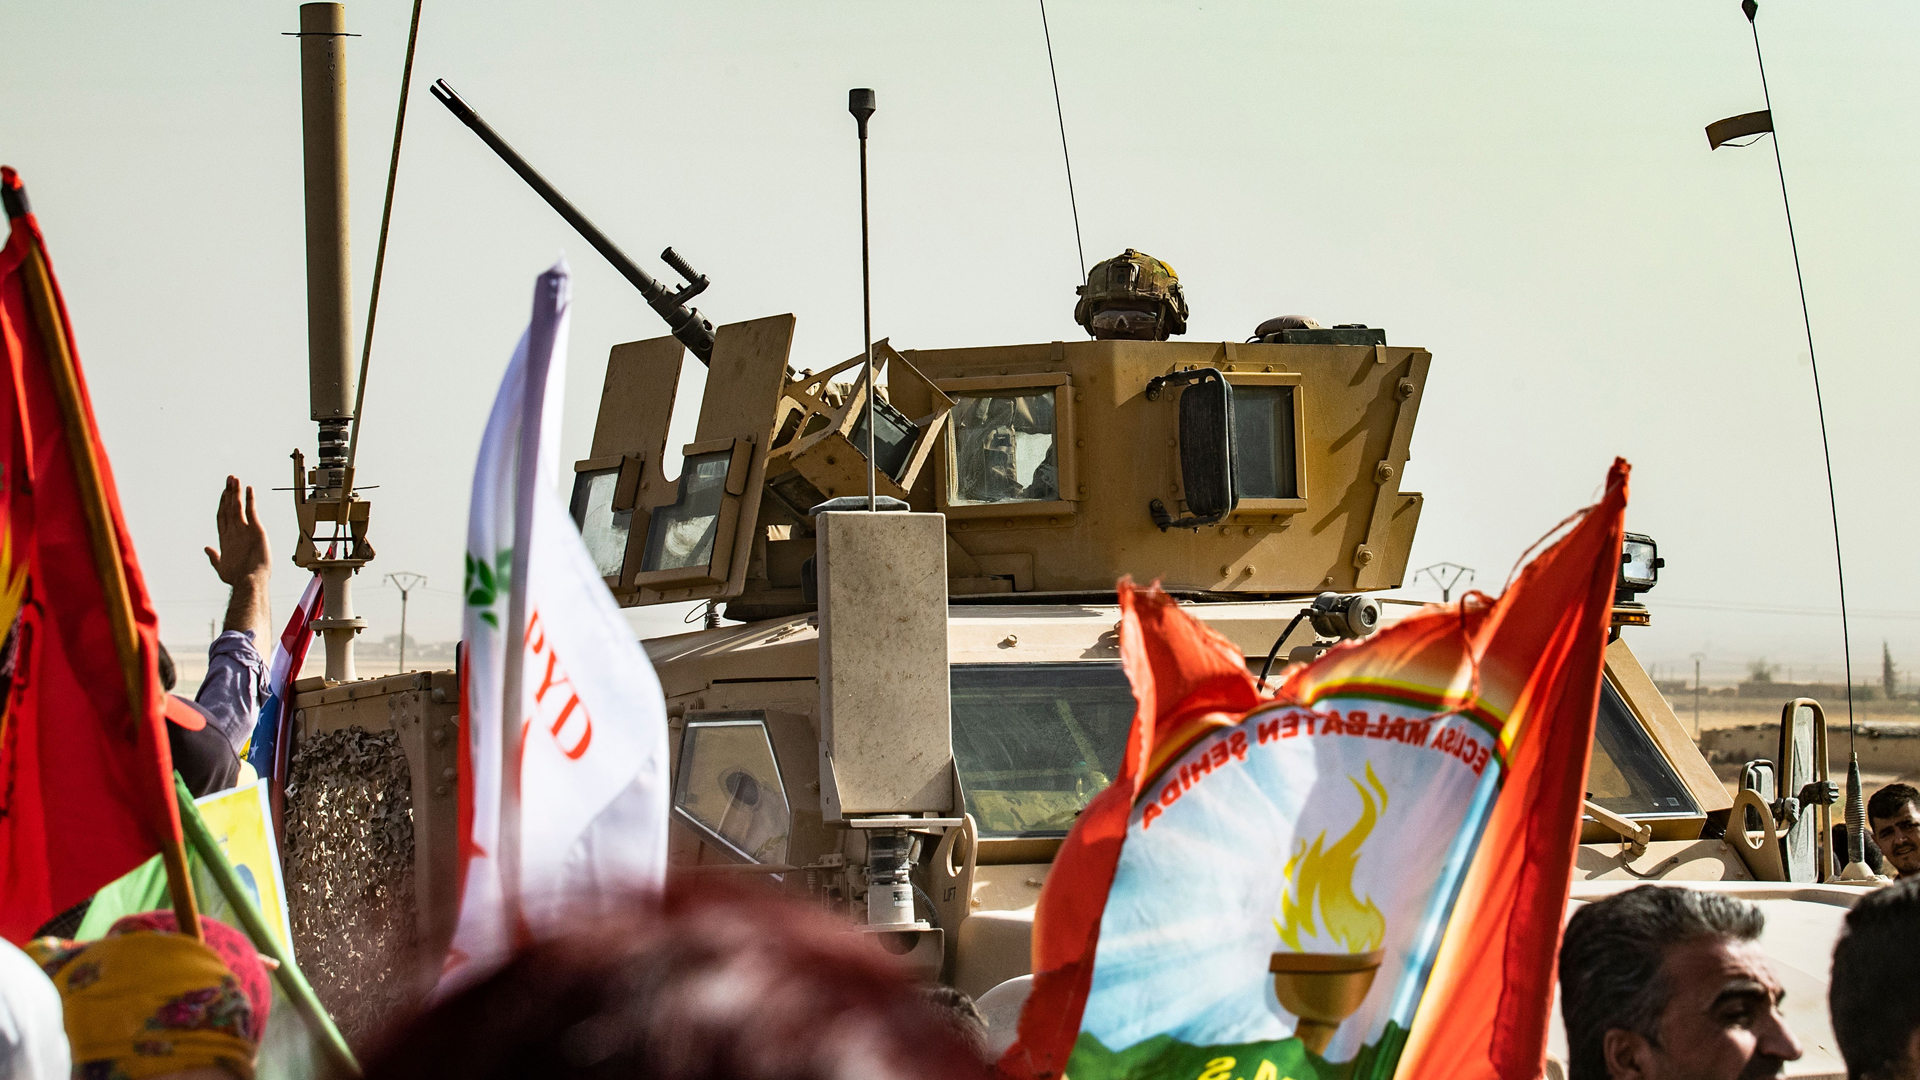 """A soldier sits atop an armored vehicle during a demonstration by Syrian Kurds against Turkish threats at a US-led international coalition base on the outskirts of Ras al-Ain town in Syria's Hasakeh province near the Turkish border on October 6, 2019. - Ankara had reiterated on October 5 an oft-repeated threat to launch an """"air and ground"""" operation in Syria against a Kurdish militia it deems a terrorist group. (Credit: Delil Souleiman/AFP/Getty Images)"""